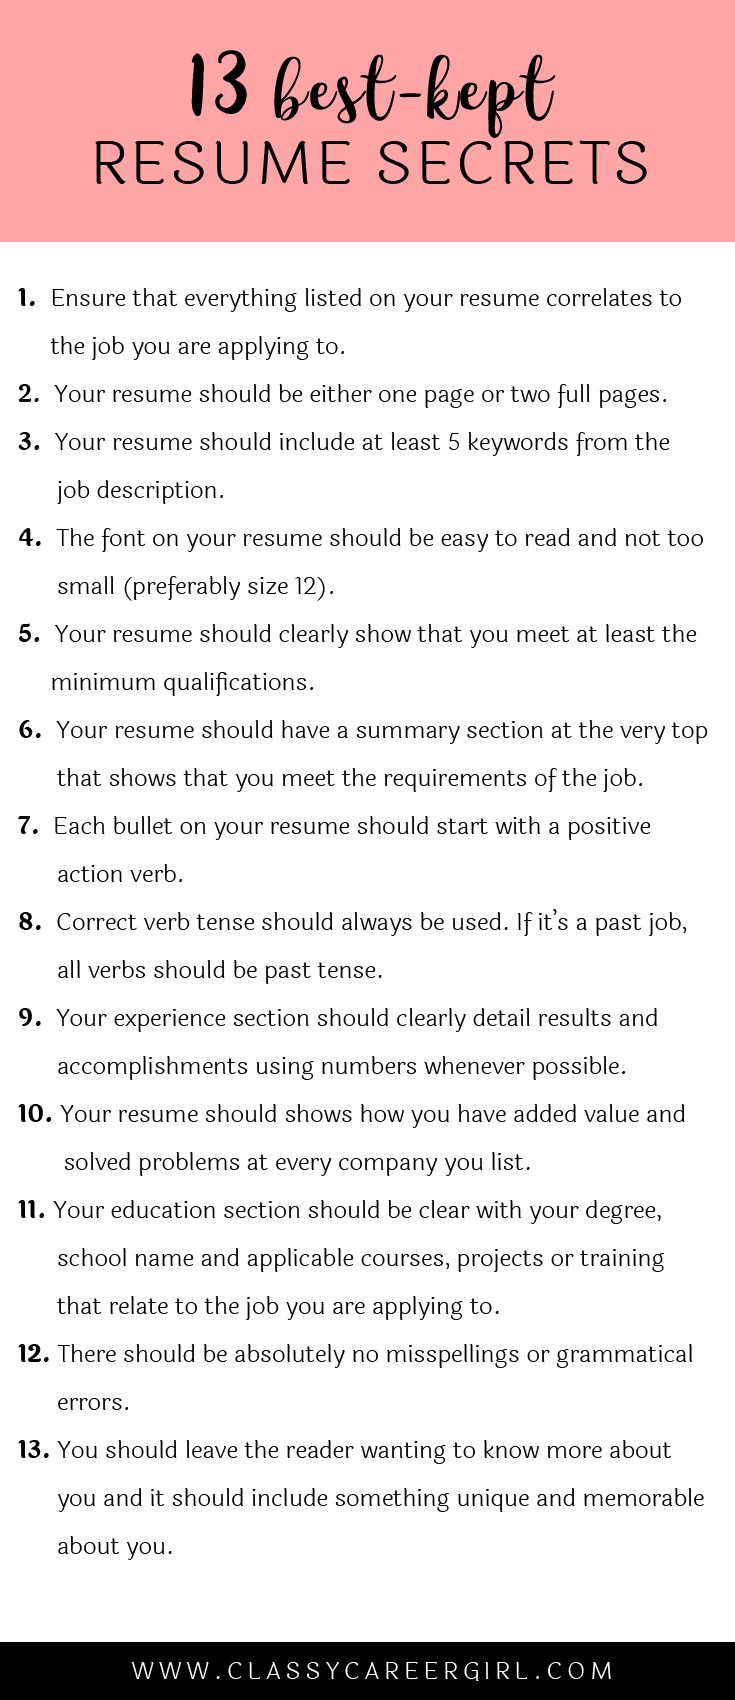 Opposenewapstandardsus  Nice  Ideas About Resume On Pinterest  Cv Format Resume Cv And  With Luxury Some Hiring Managers Will Toss Your Resume Out If You Dont Know These  With Beauteous Harvard Mba Resume Also Wealth Management Resume In Addition Software Sales Resume And Sales Associate Sample Resume As Well As Free Resume Search Engines For Employers Additionally Multiple Positions Same Company Resume From Pinterestcom With Opposenewapstandardsus  Luxury  Ideas About Resume On Pinterest  Cv Format Resume Cv And  With Beauteous Some Hiring Managers Will Toss Your Resume Out If You Dont Know These  And Nice Harvard Mba Resume Also Wealth Management Resume In Addition Software Sales Resume From Pinterestcom